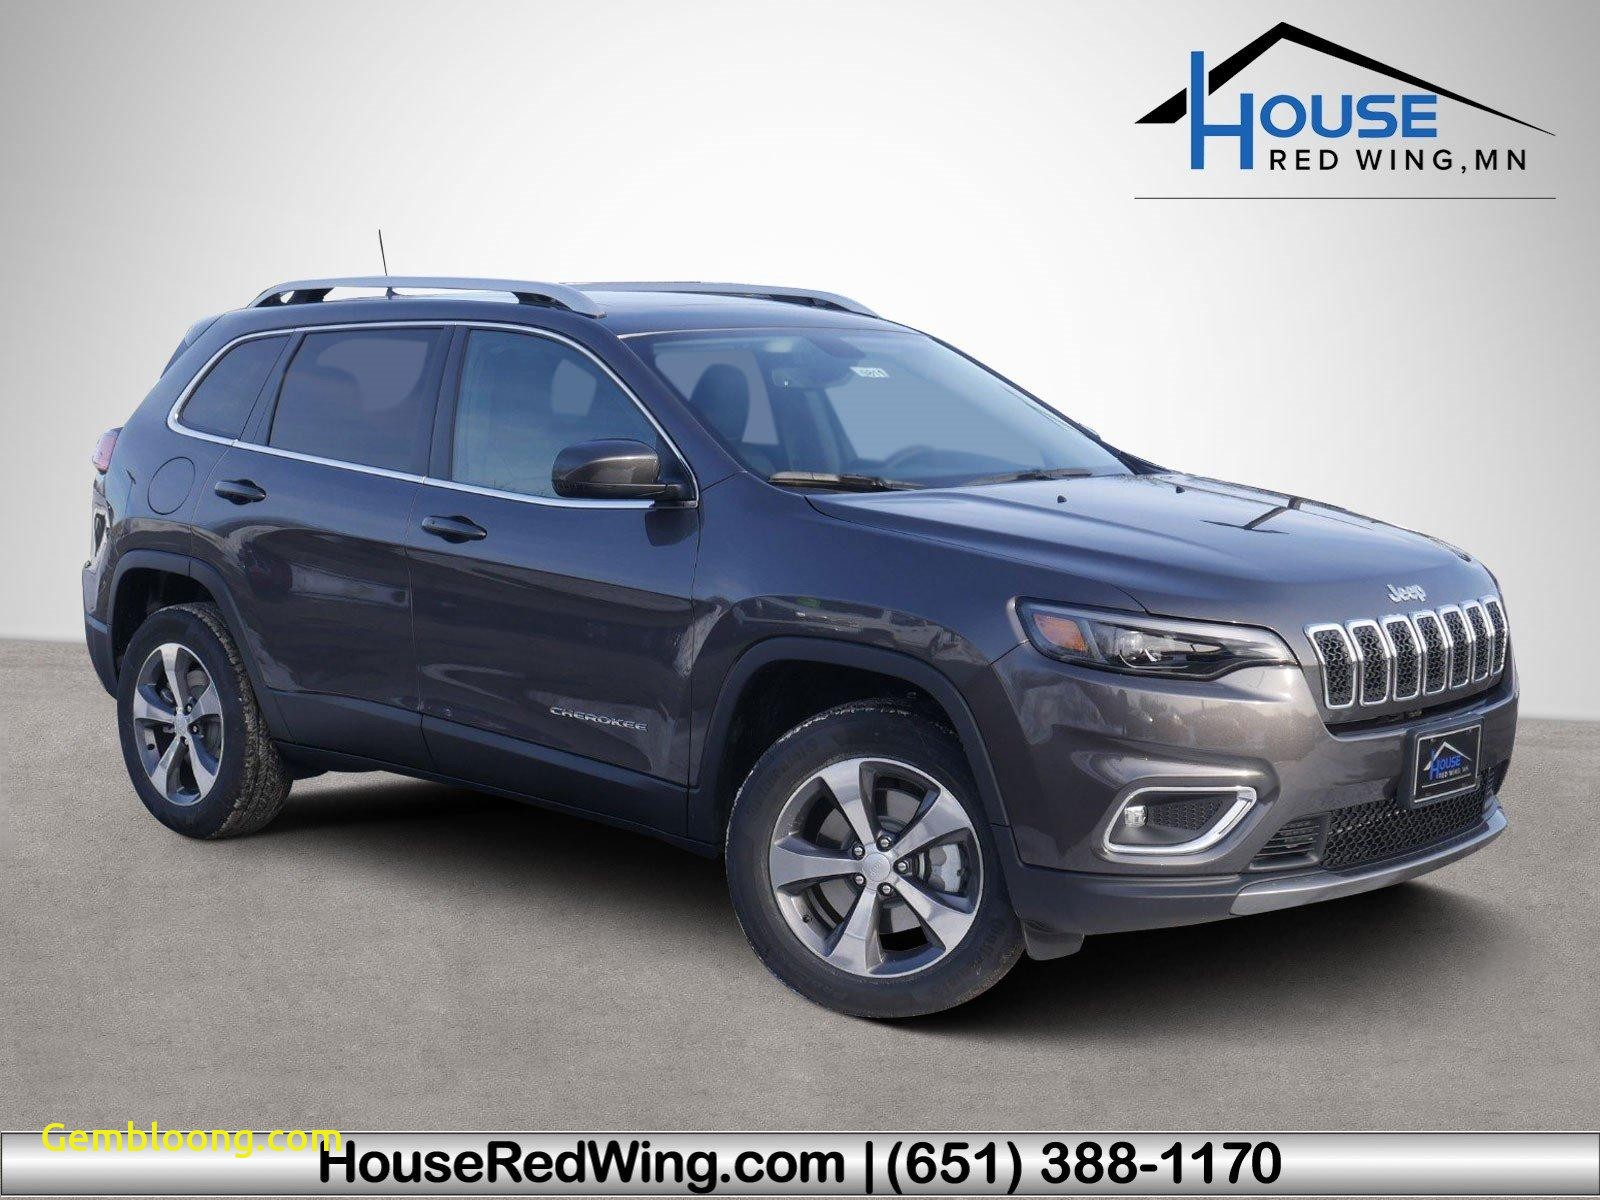 Used Cars for Sale Near Me Jeep Lovely New & Used Cars for Sale